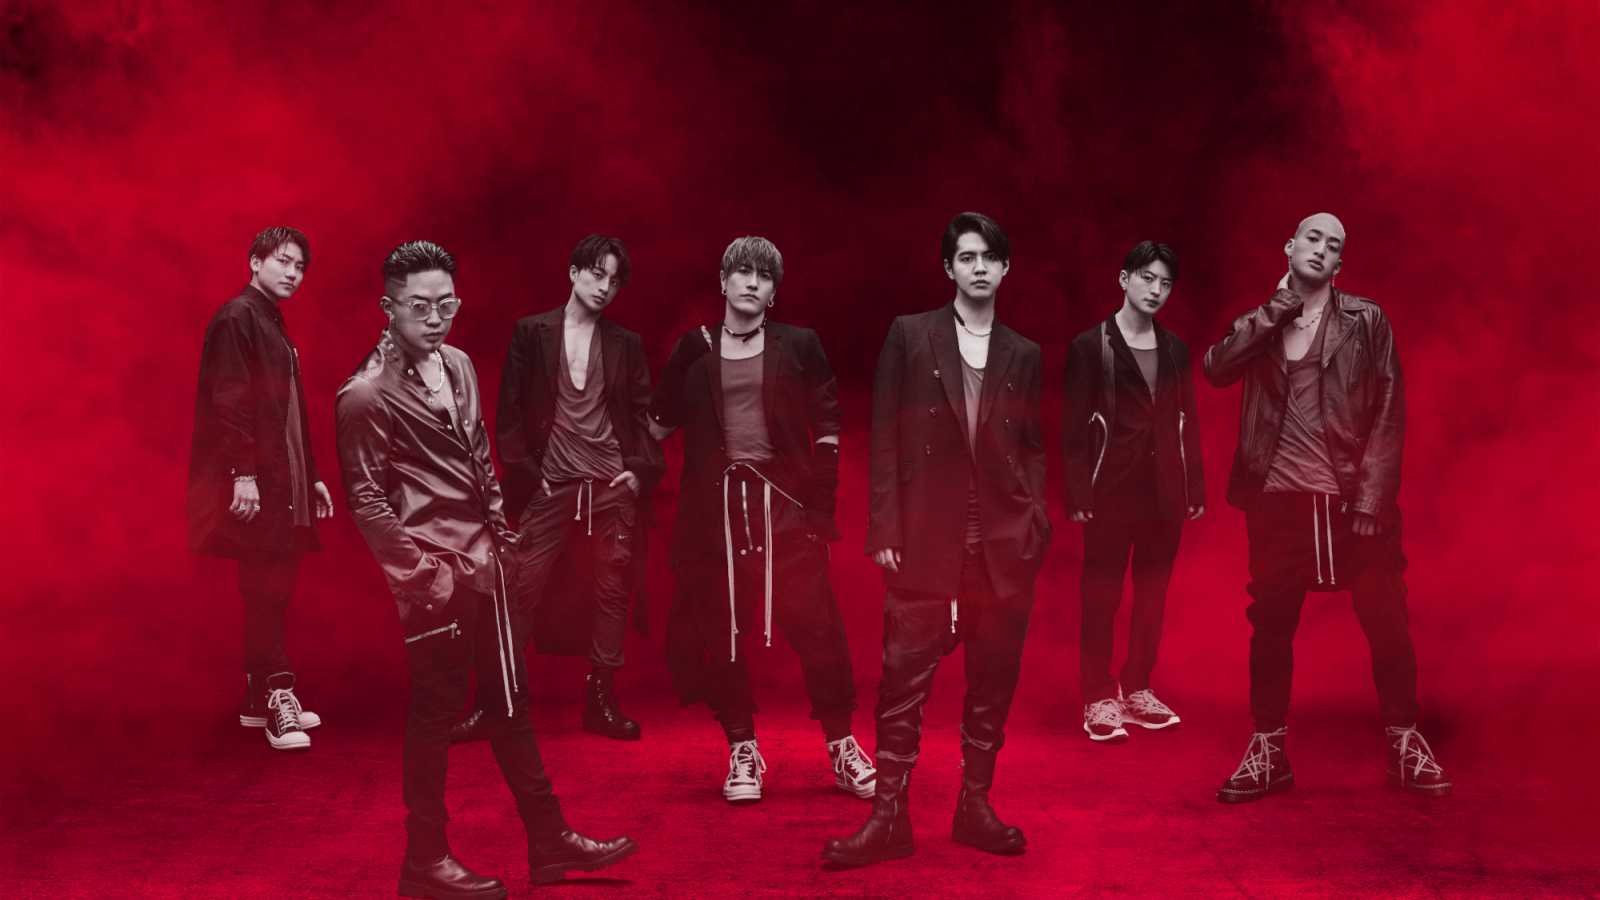 GENERATIONS from EXILE TRIBE © GENERATIONS from EXILE TRIBE. All rights reserved.